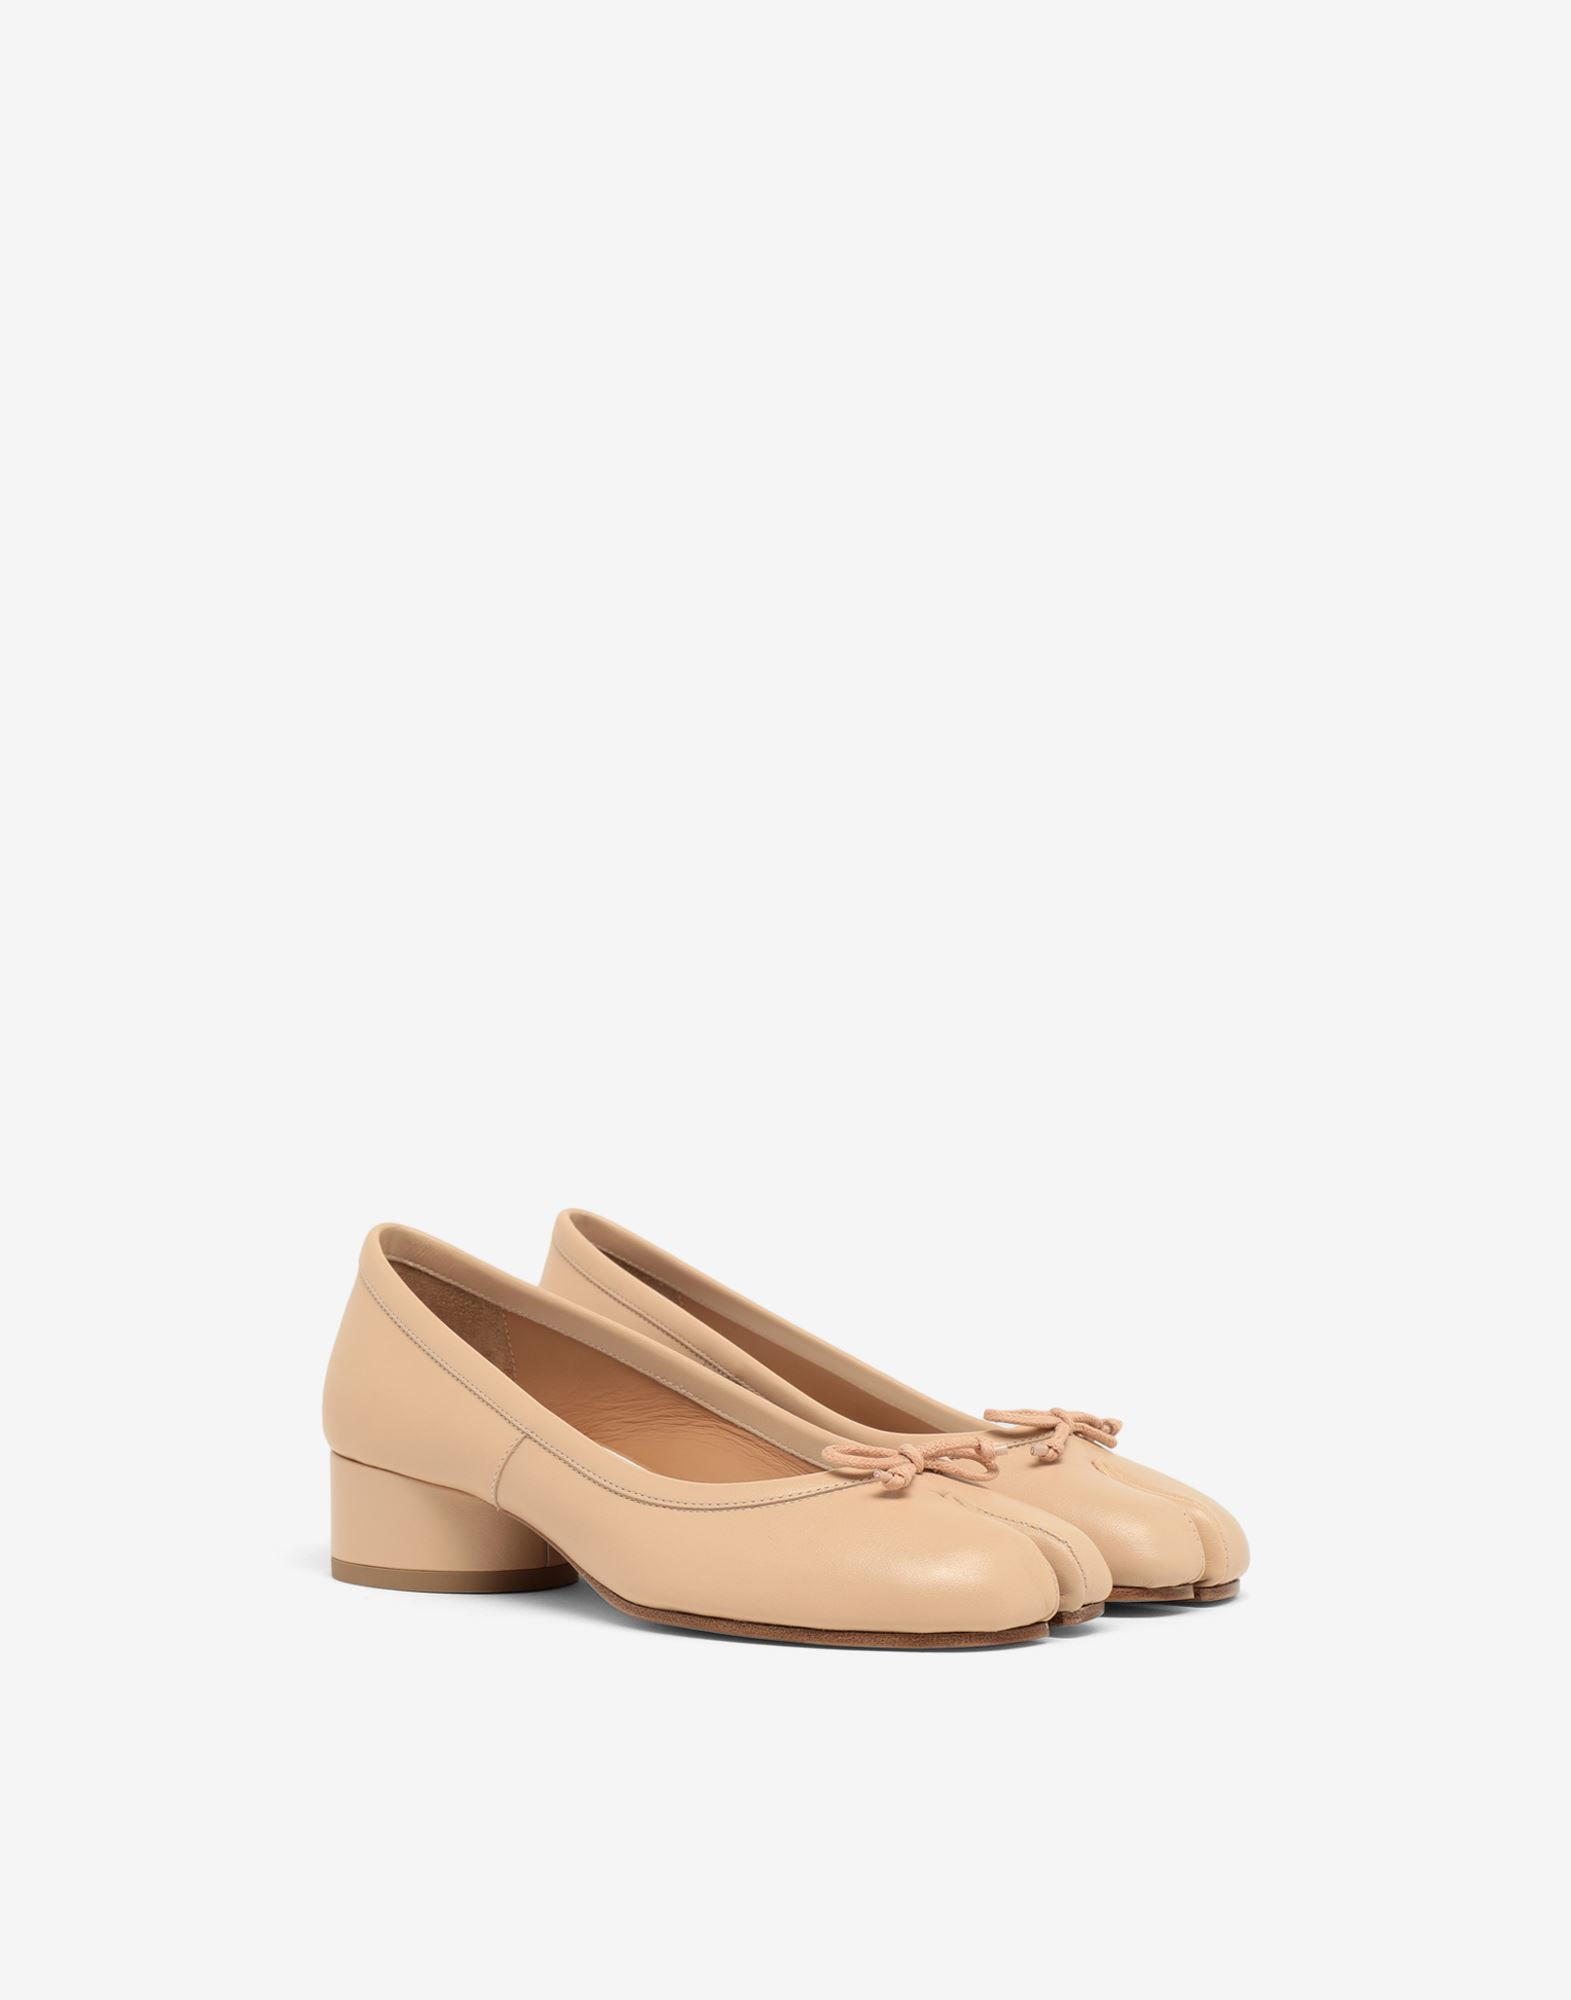 MAISON MARGIELA Tabi leather ballerina pumps Ballet flats Woman r